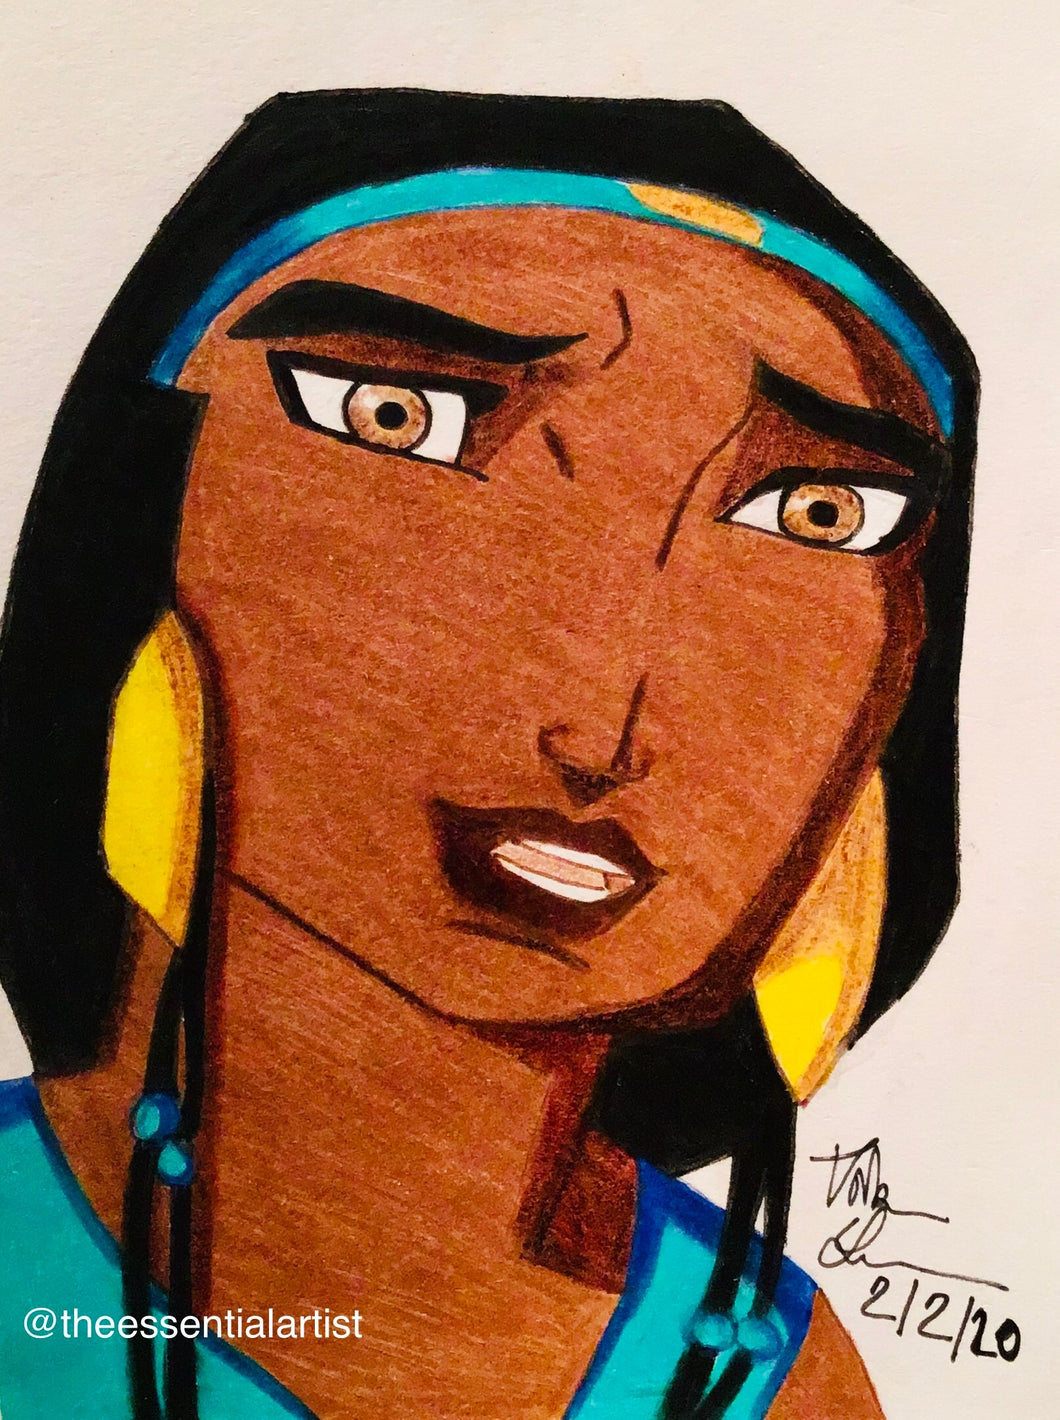 Tzipporah from the Prince of Egypt